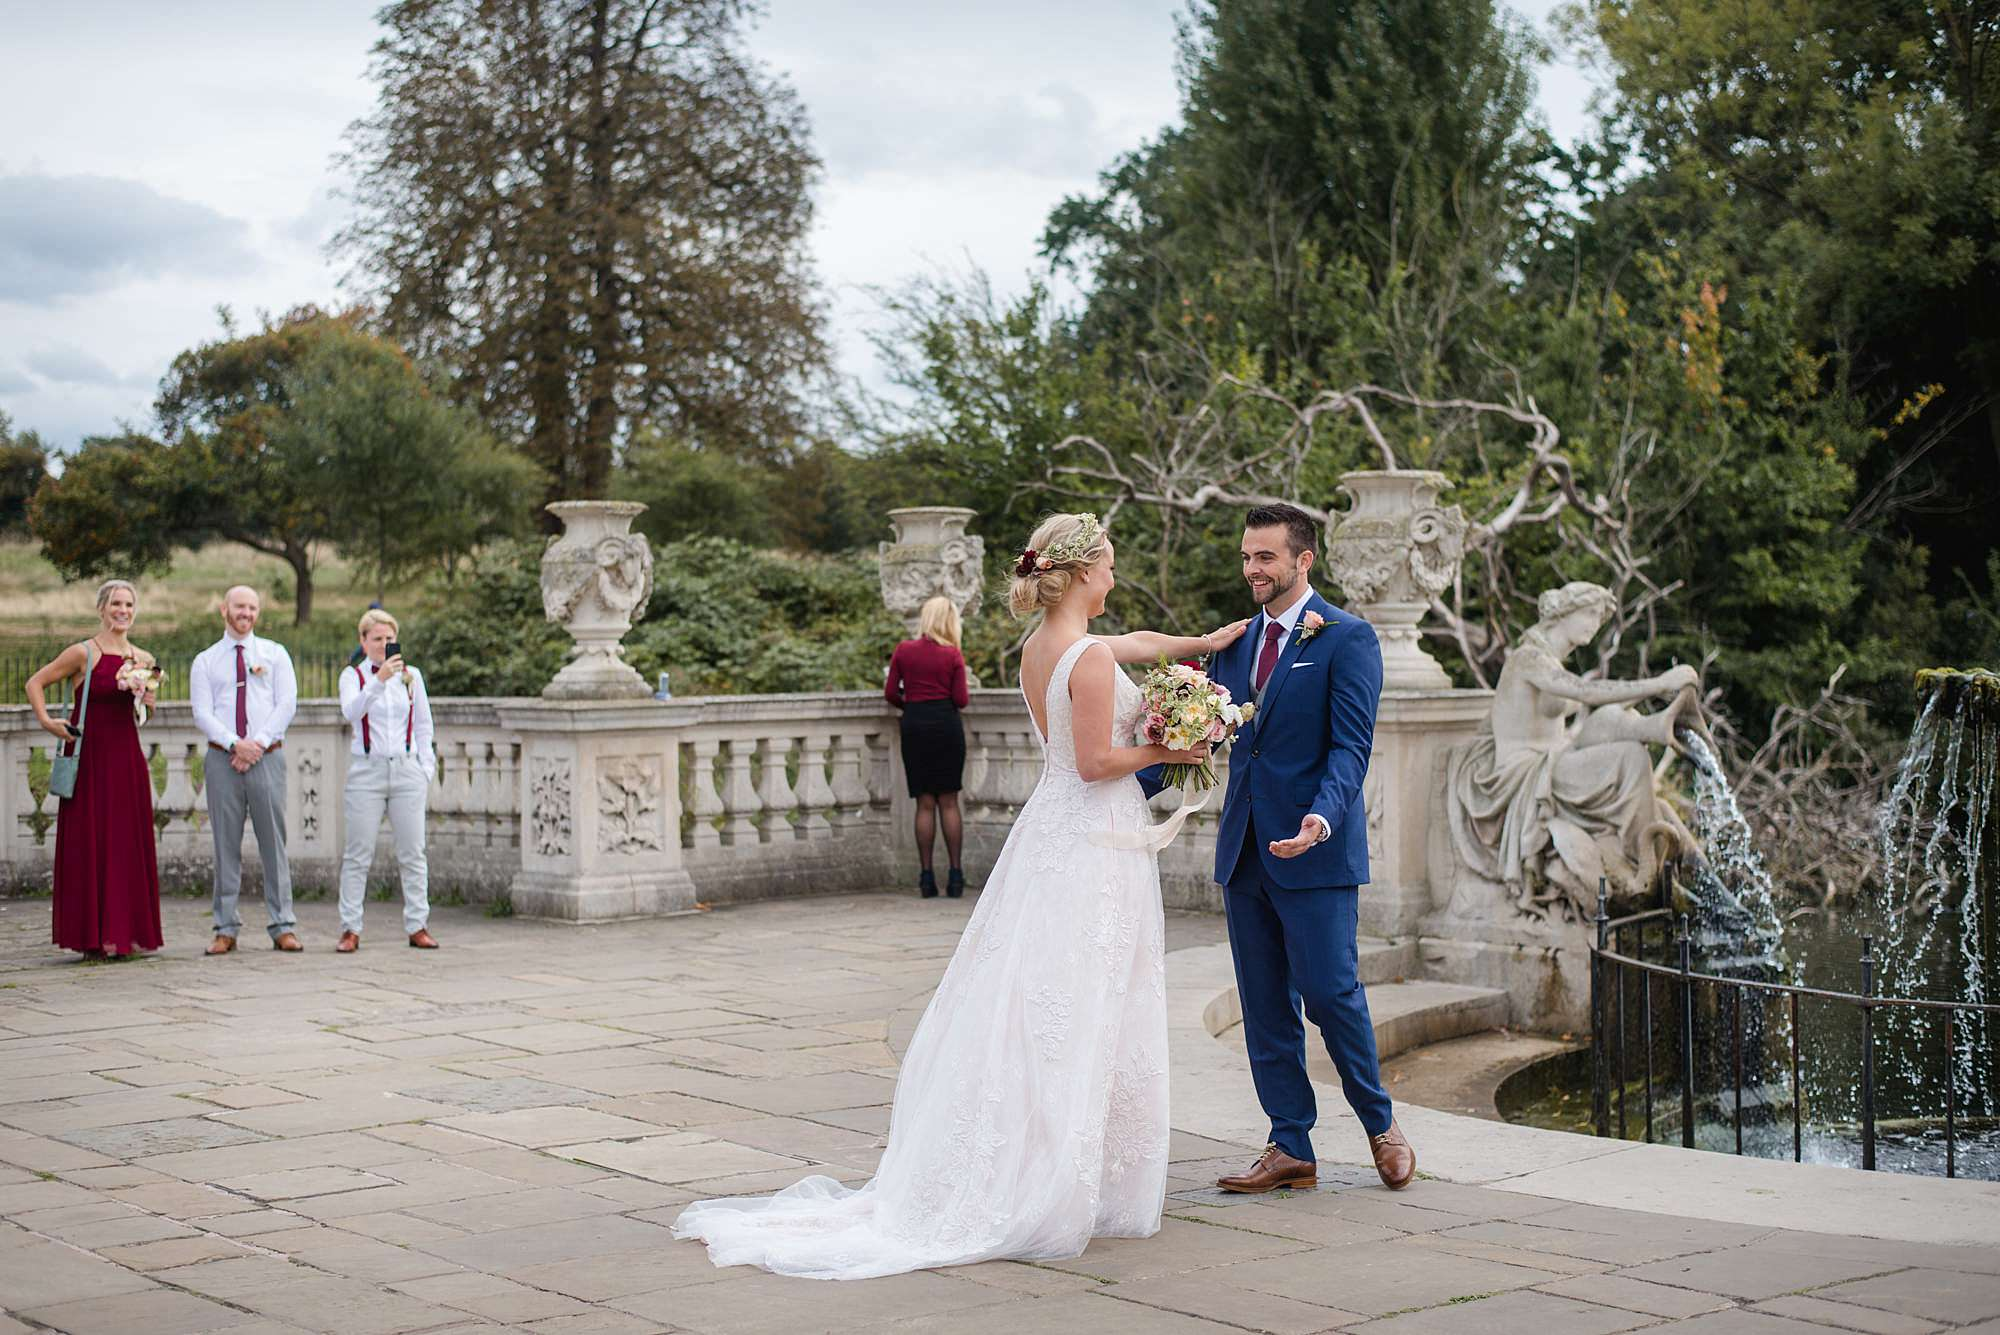 The Union Paddington Wedding groom greets bride at first look